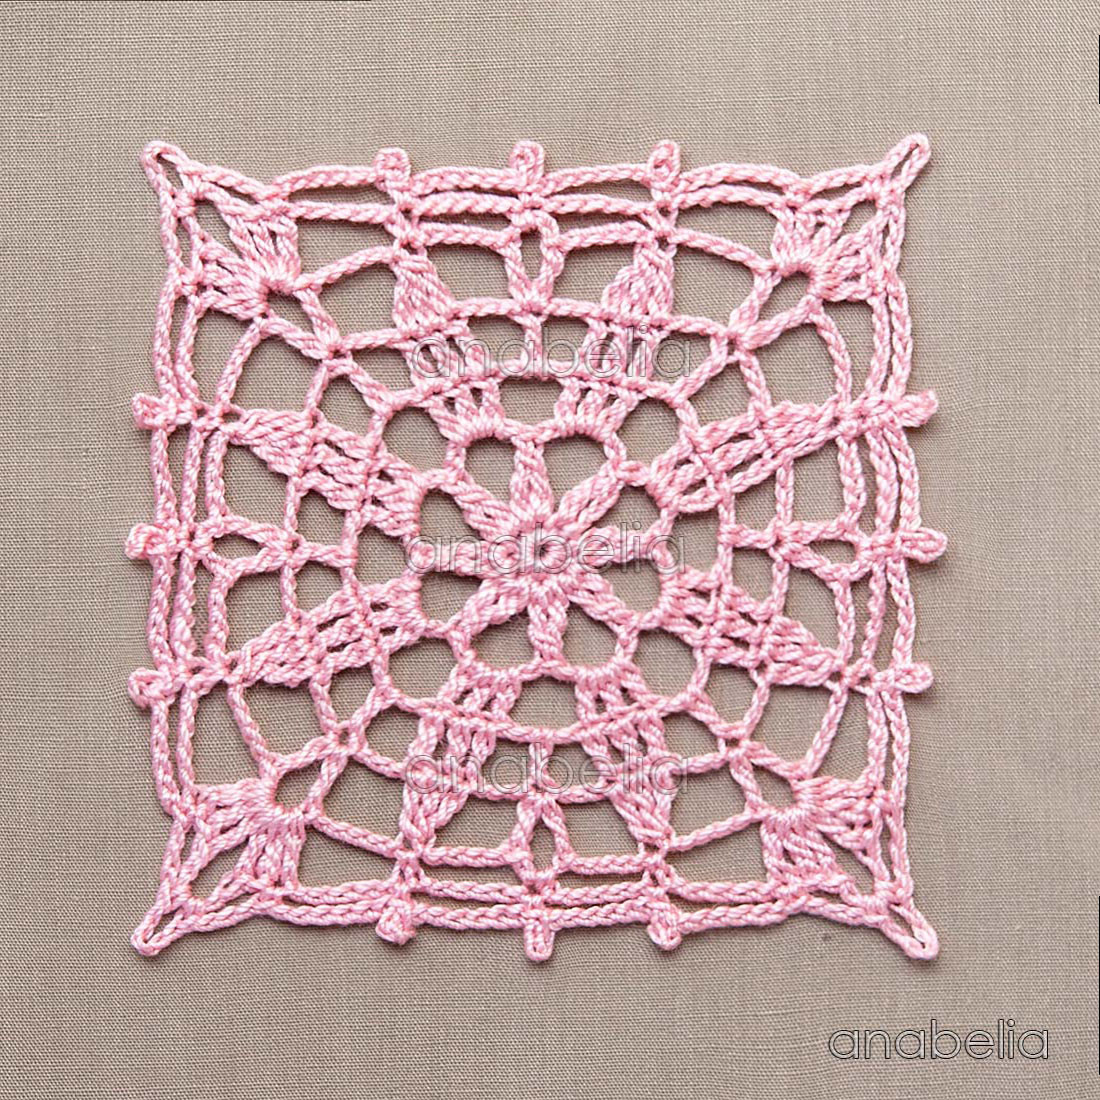 Awesome Anabelia Craft Design Crochet Lace Motifs In Pink and Crochet Motif Patterns Of Amazing 44 Models Crochet Motif Patterns